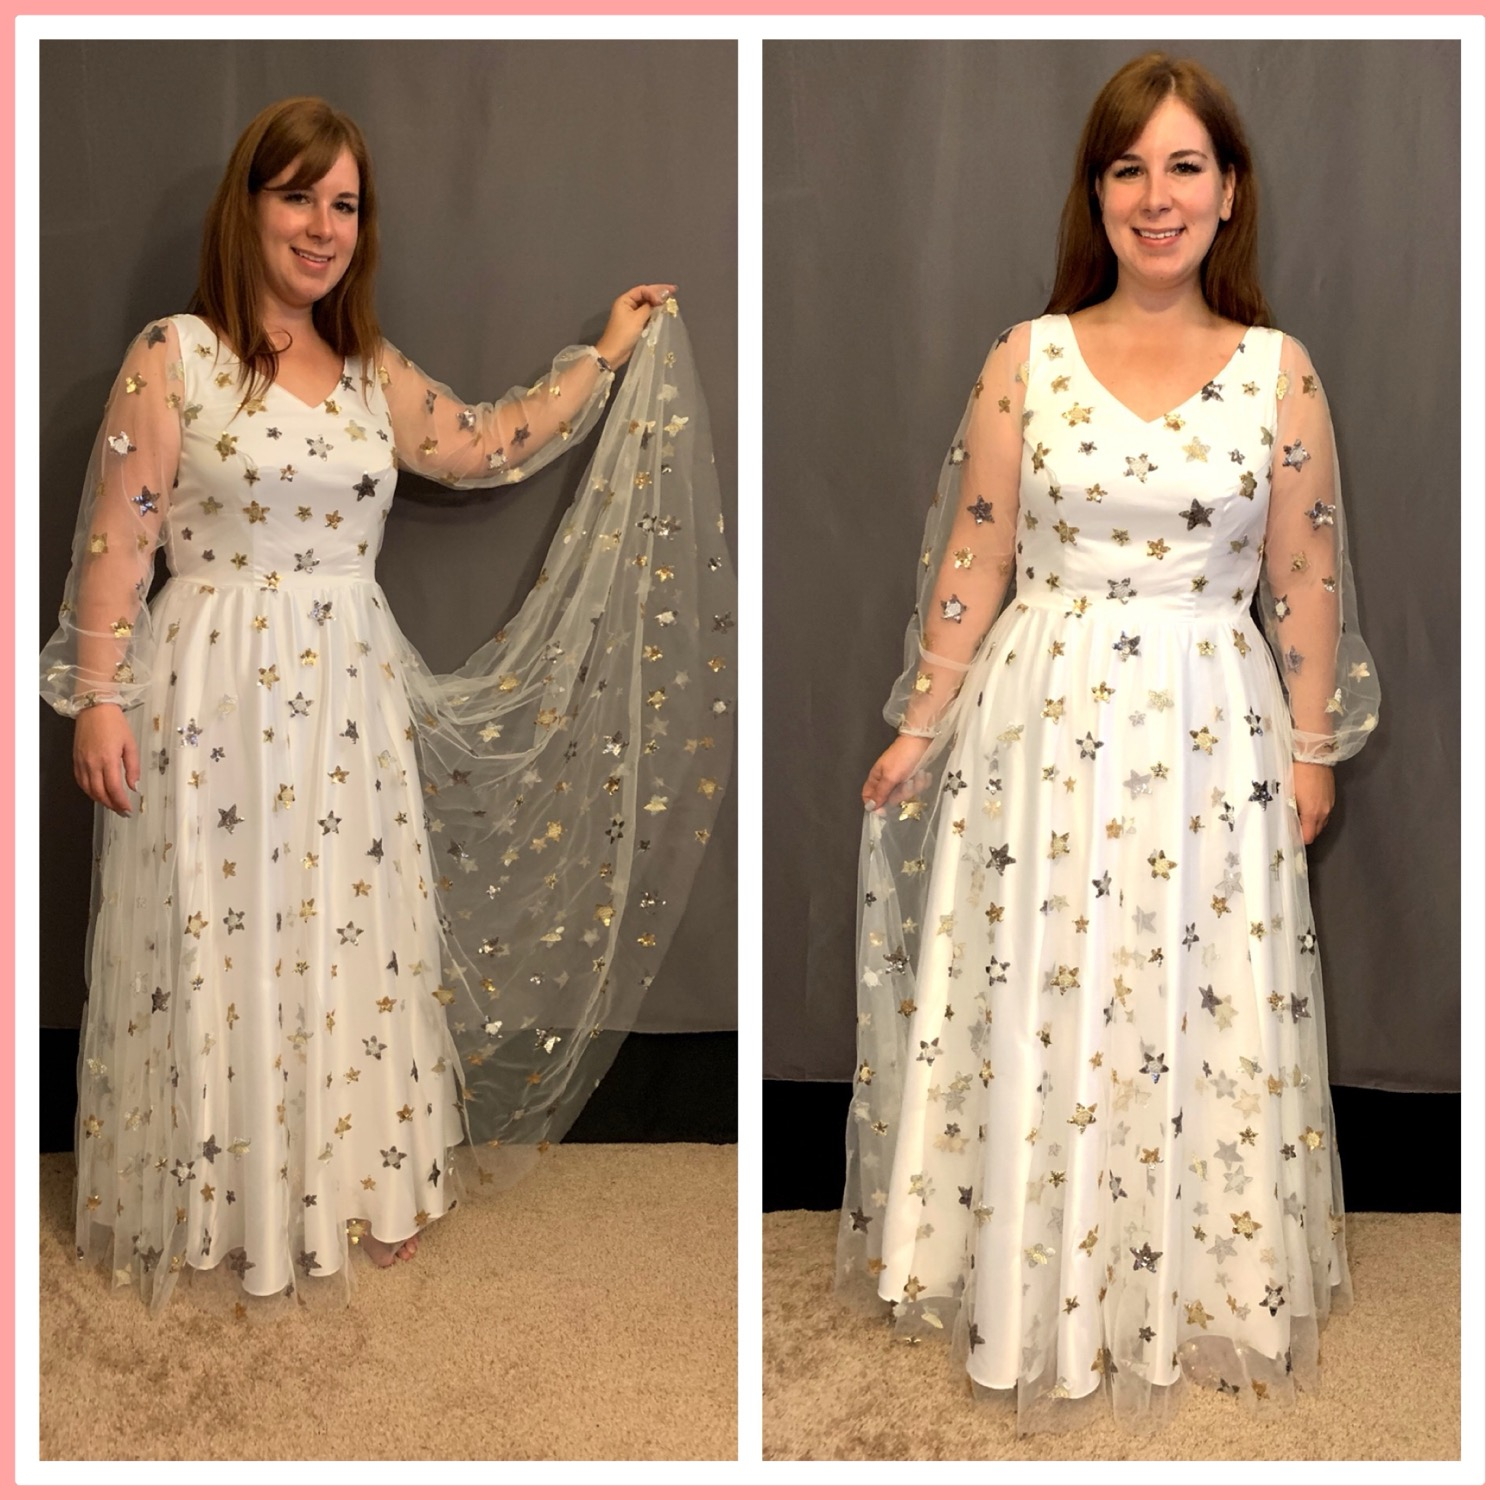 custom made bridal shower dress by seamstress Lena in Orlando